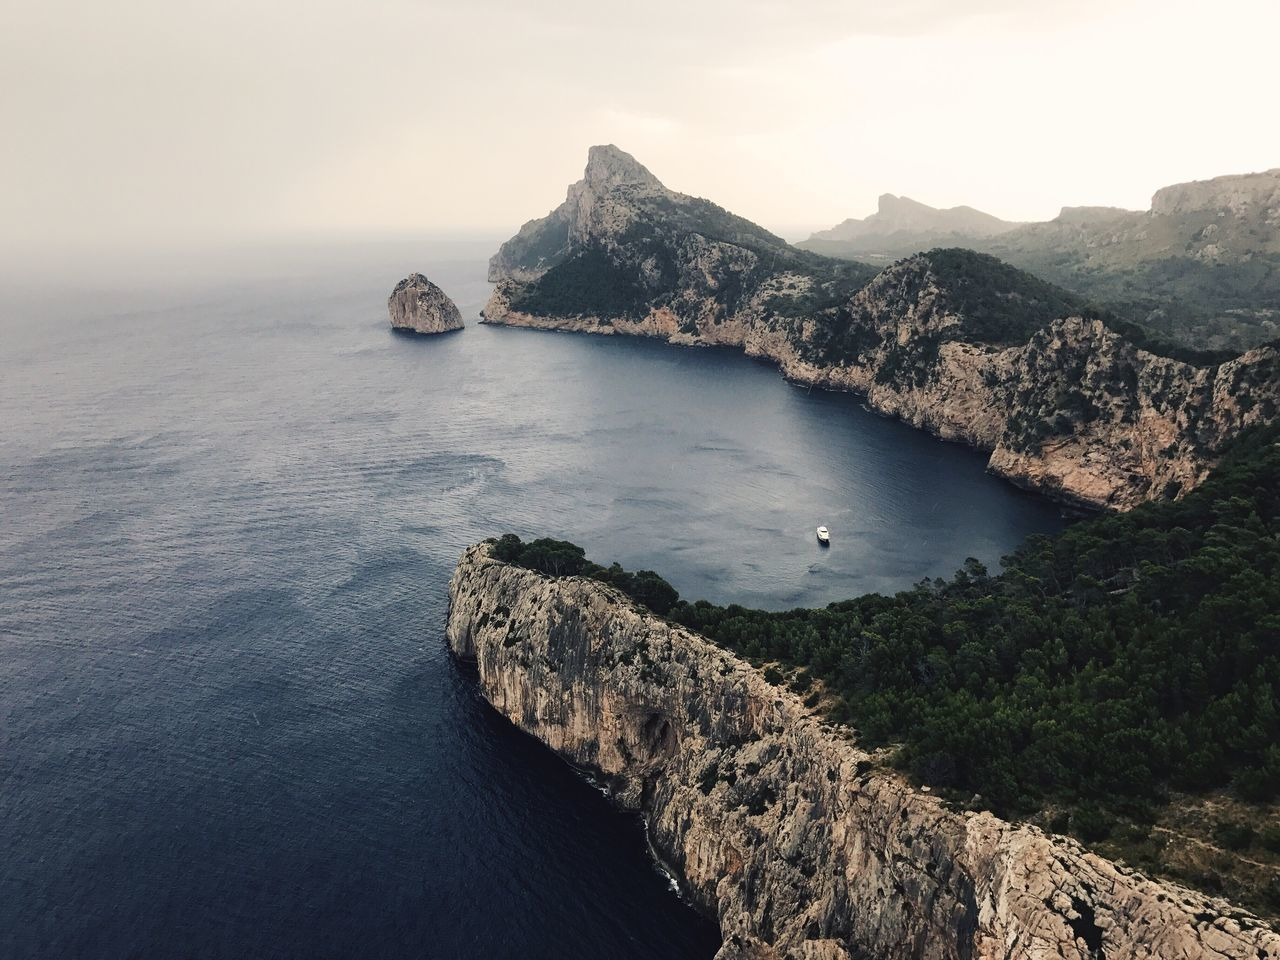 Rock - Object Water Nature Scenics Sea Beauty In Nature High Angle View Tranquility Mountain Outdoors No People Tranquil Scene Day Sky Travel Destinations Cliff Clear Sky Nautical Vessel Formentor Peninsula Backgrounds Wallpaper Mallorca Mountains Ocean View Copy Space